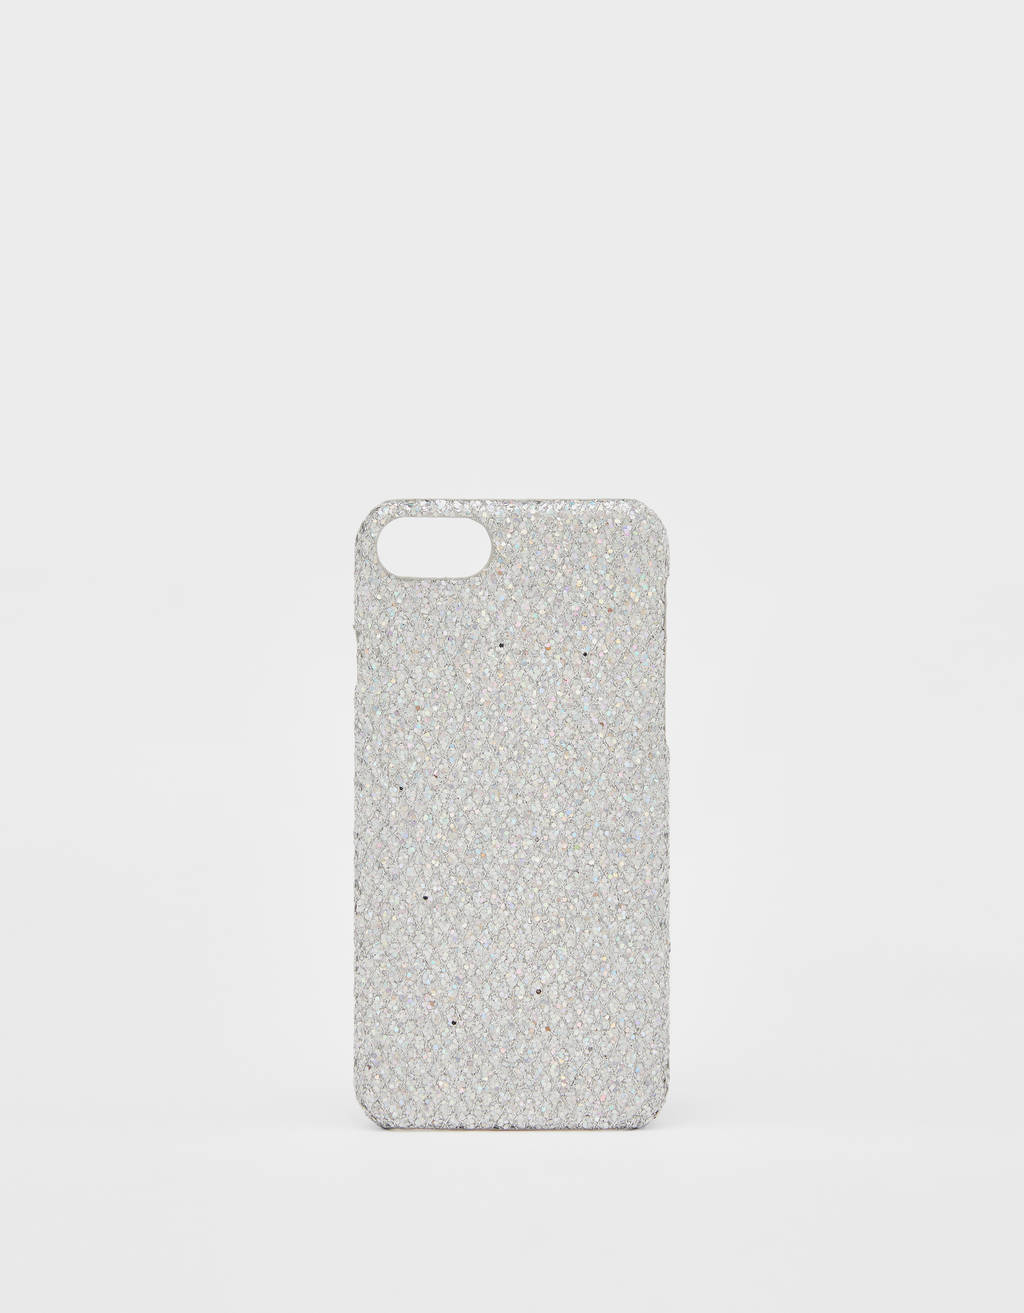 Carcasa con brillos iPhone 6 / 7 / 8